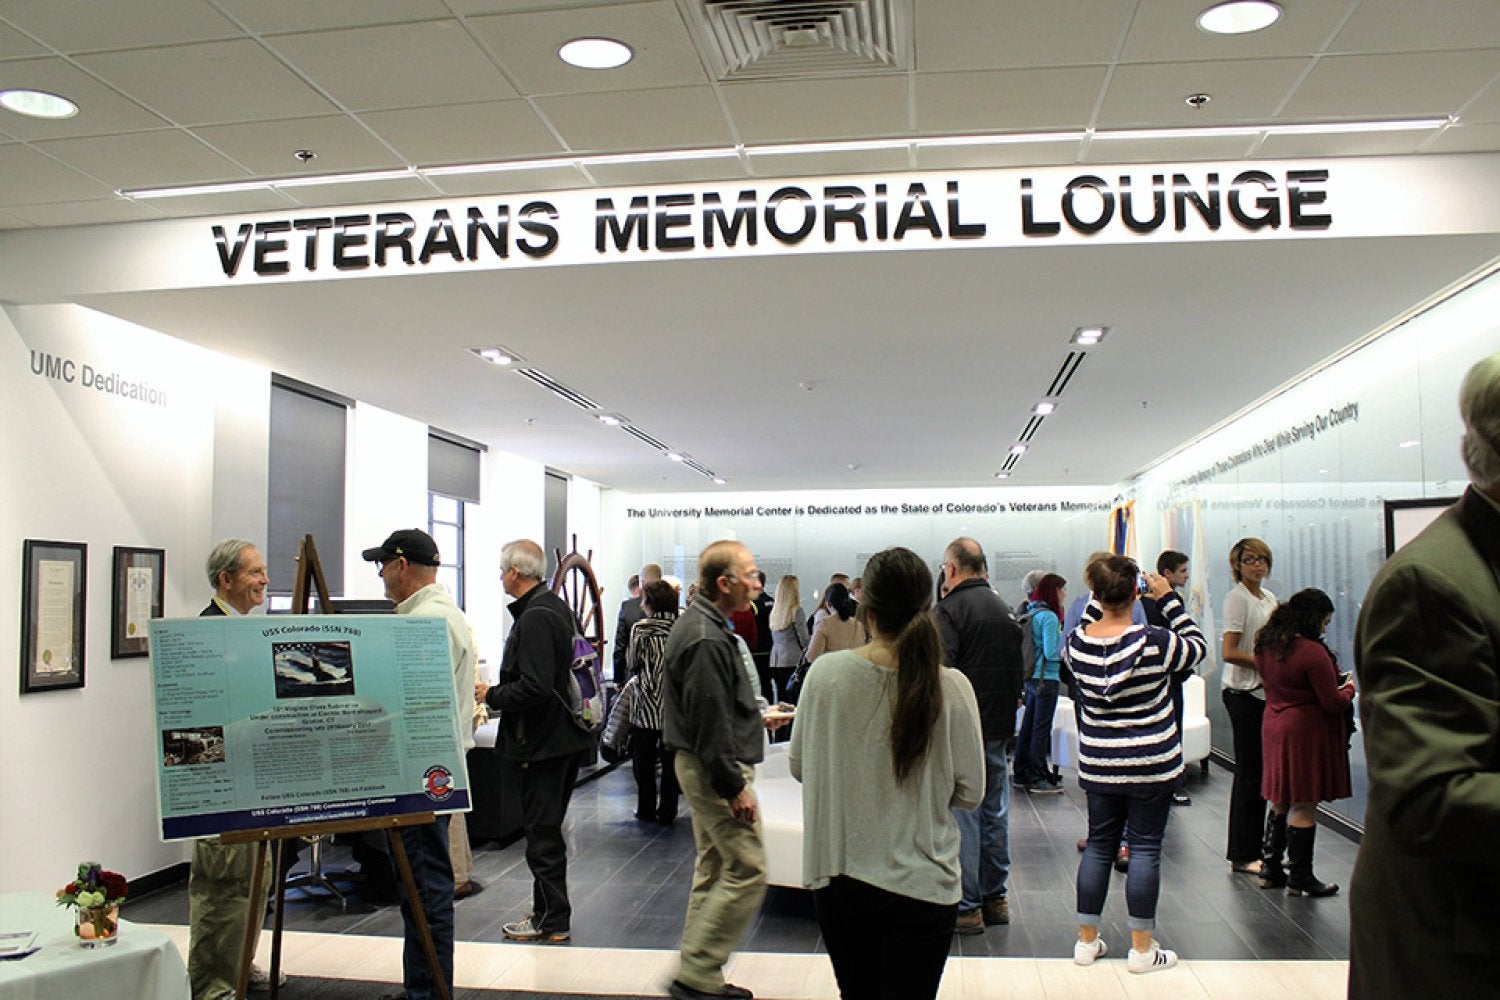 The grand opening of the renovated Veterans Memorial Lounge in the UMC